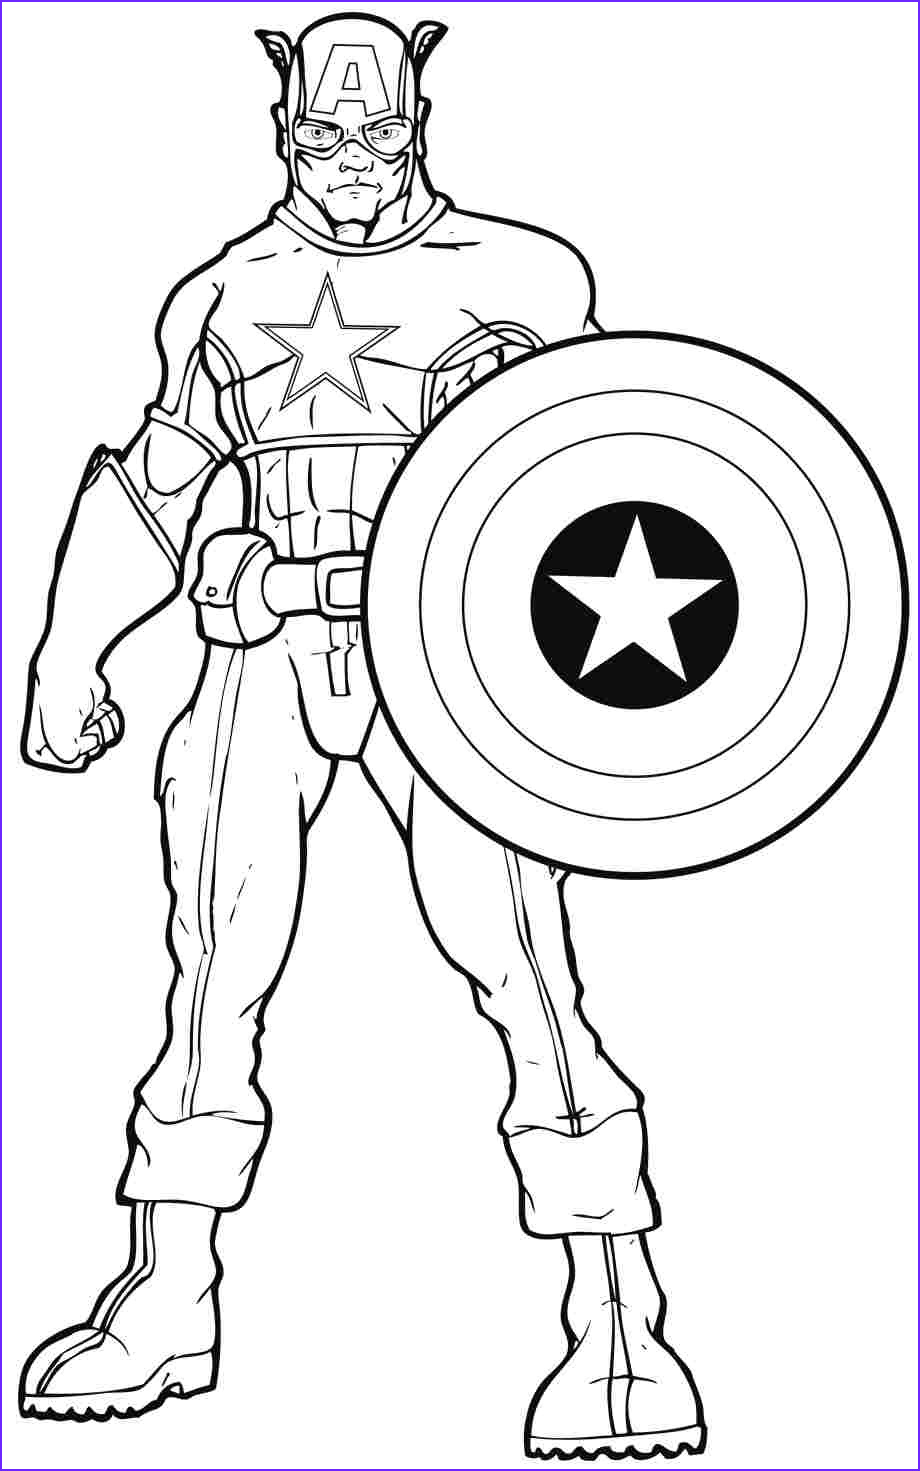 Superhero Coloring Pages Awesome Gallery Coloring Pages Superheroes Printables Coloring Home